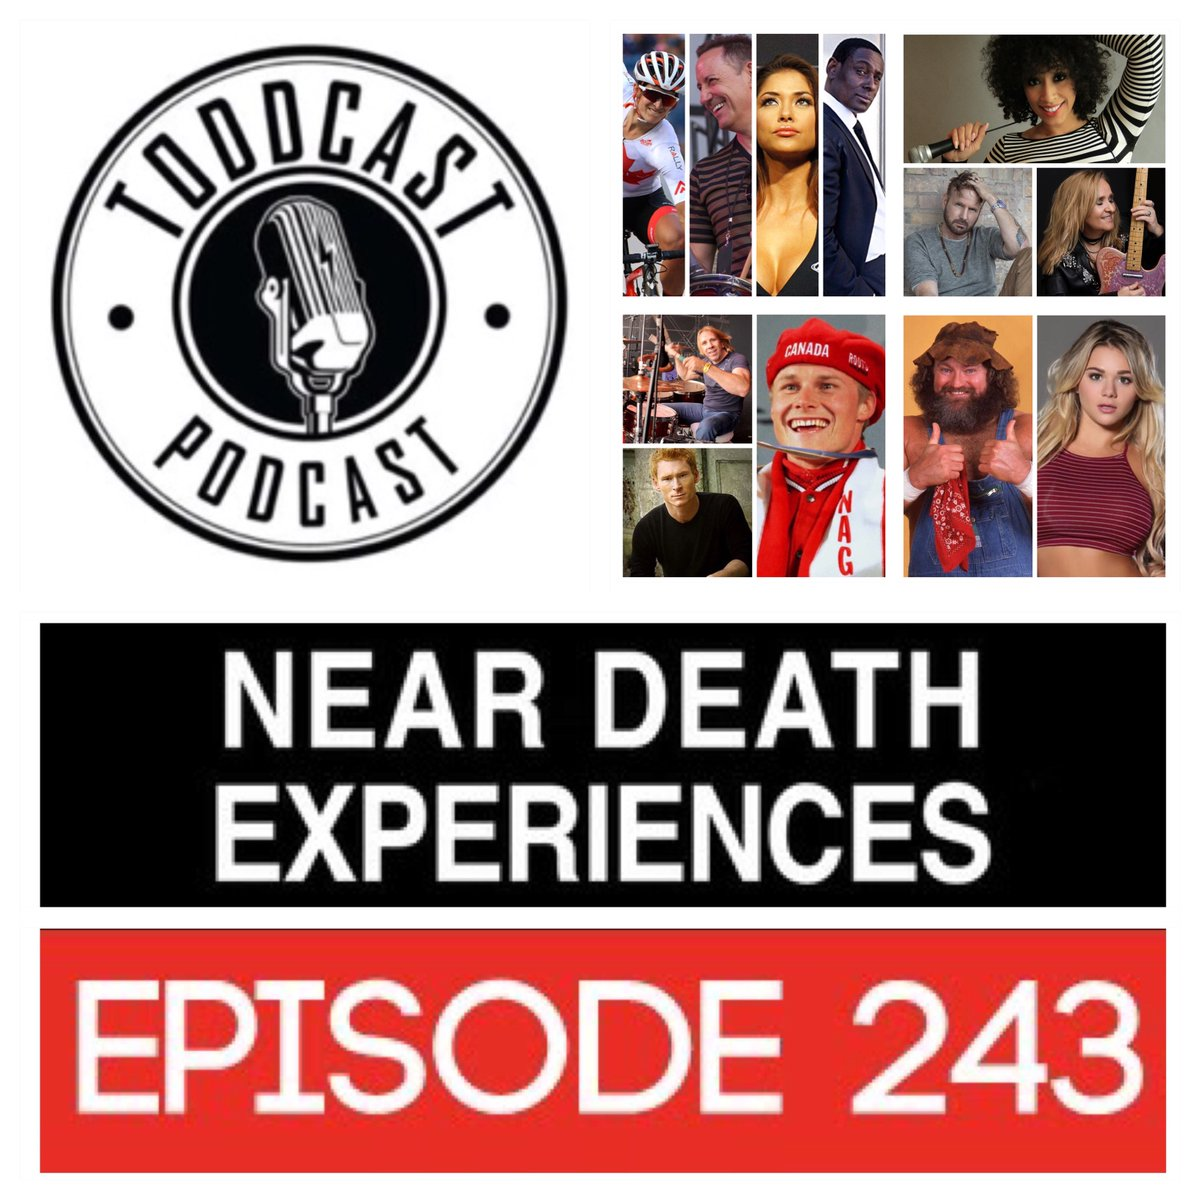 test ツイッターメディア - Do you have a #NearDeath story? Twelve guests tell stories in #podcast 243 inc. Melissa Etheridge, #UFC octagon girl Arianny Celeste & #actor David Harewood! https://t.co/EHvbyYoM0c https://t.co/cmKQXInXDI